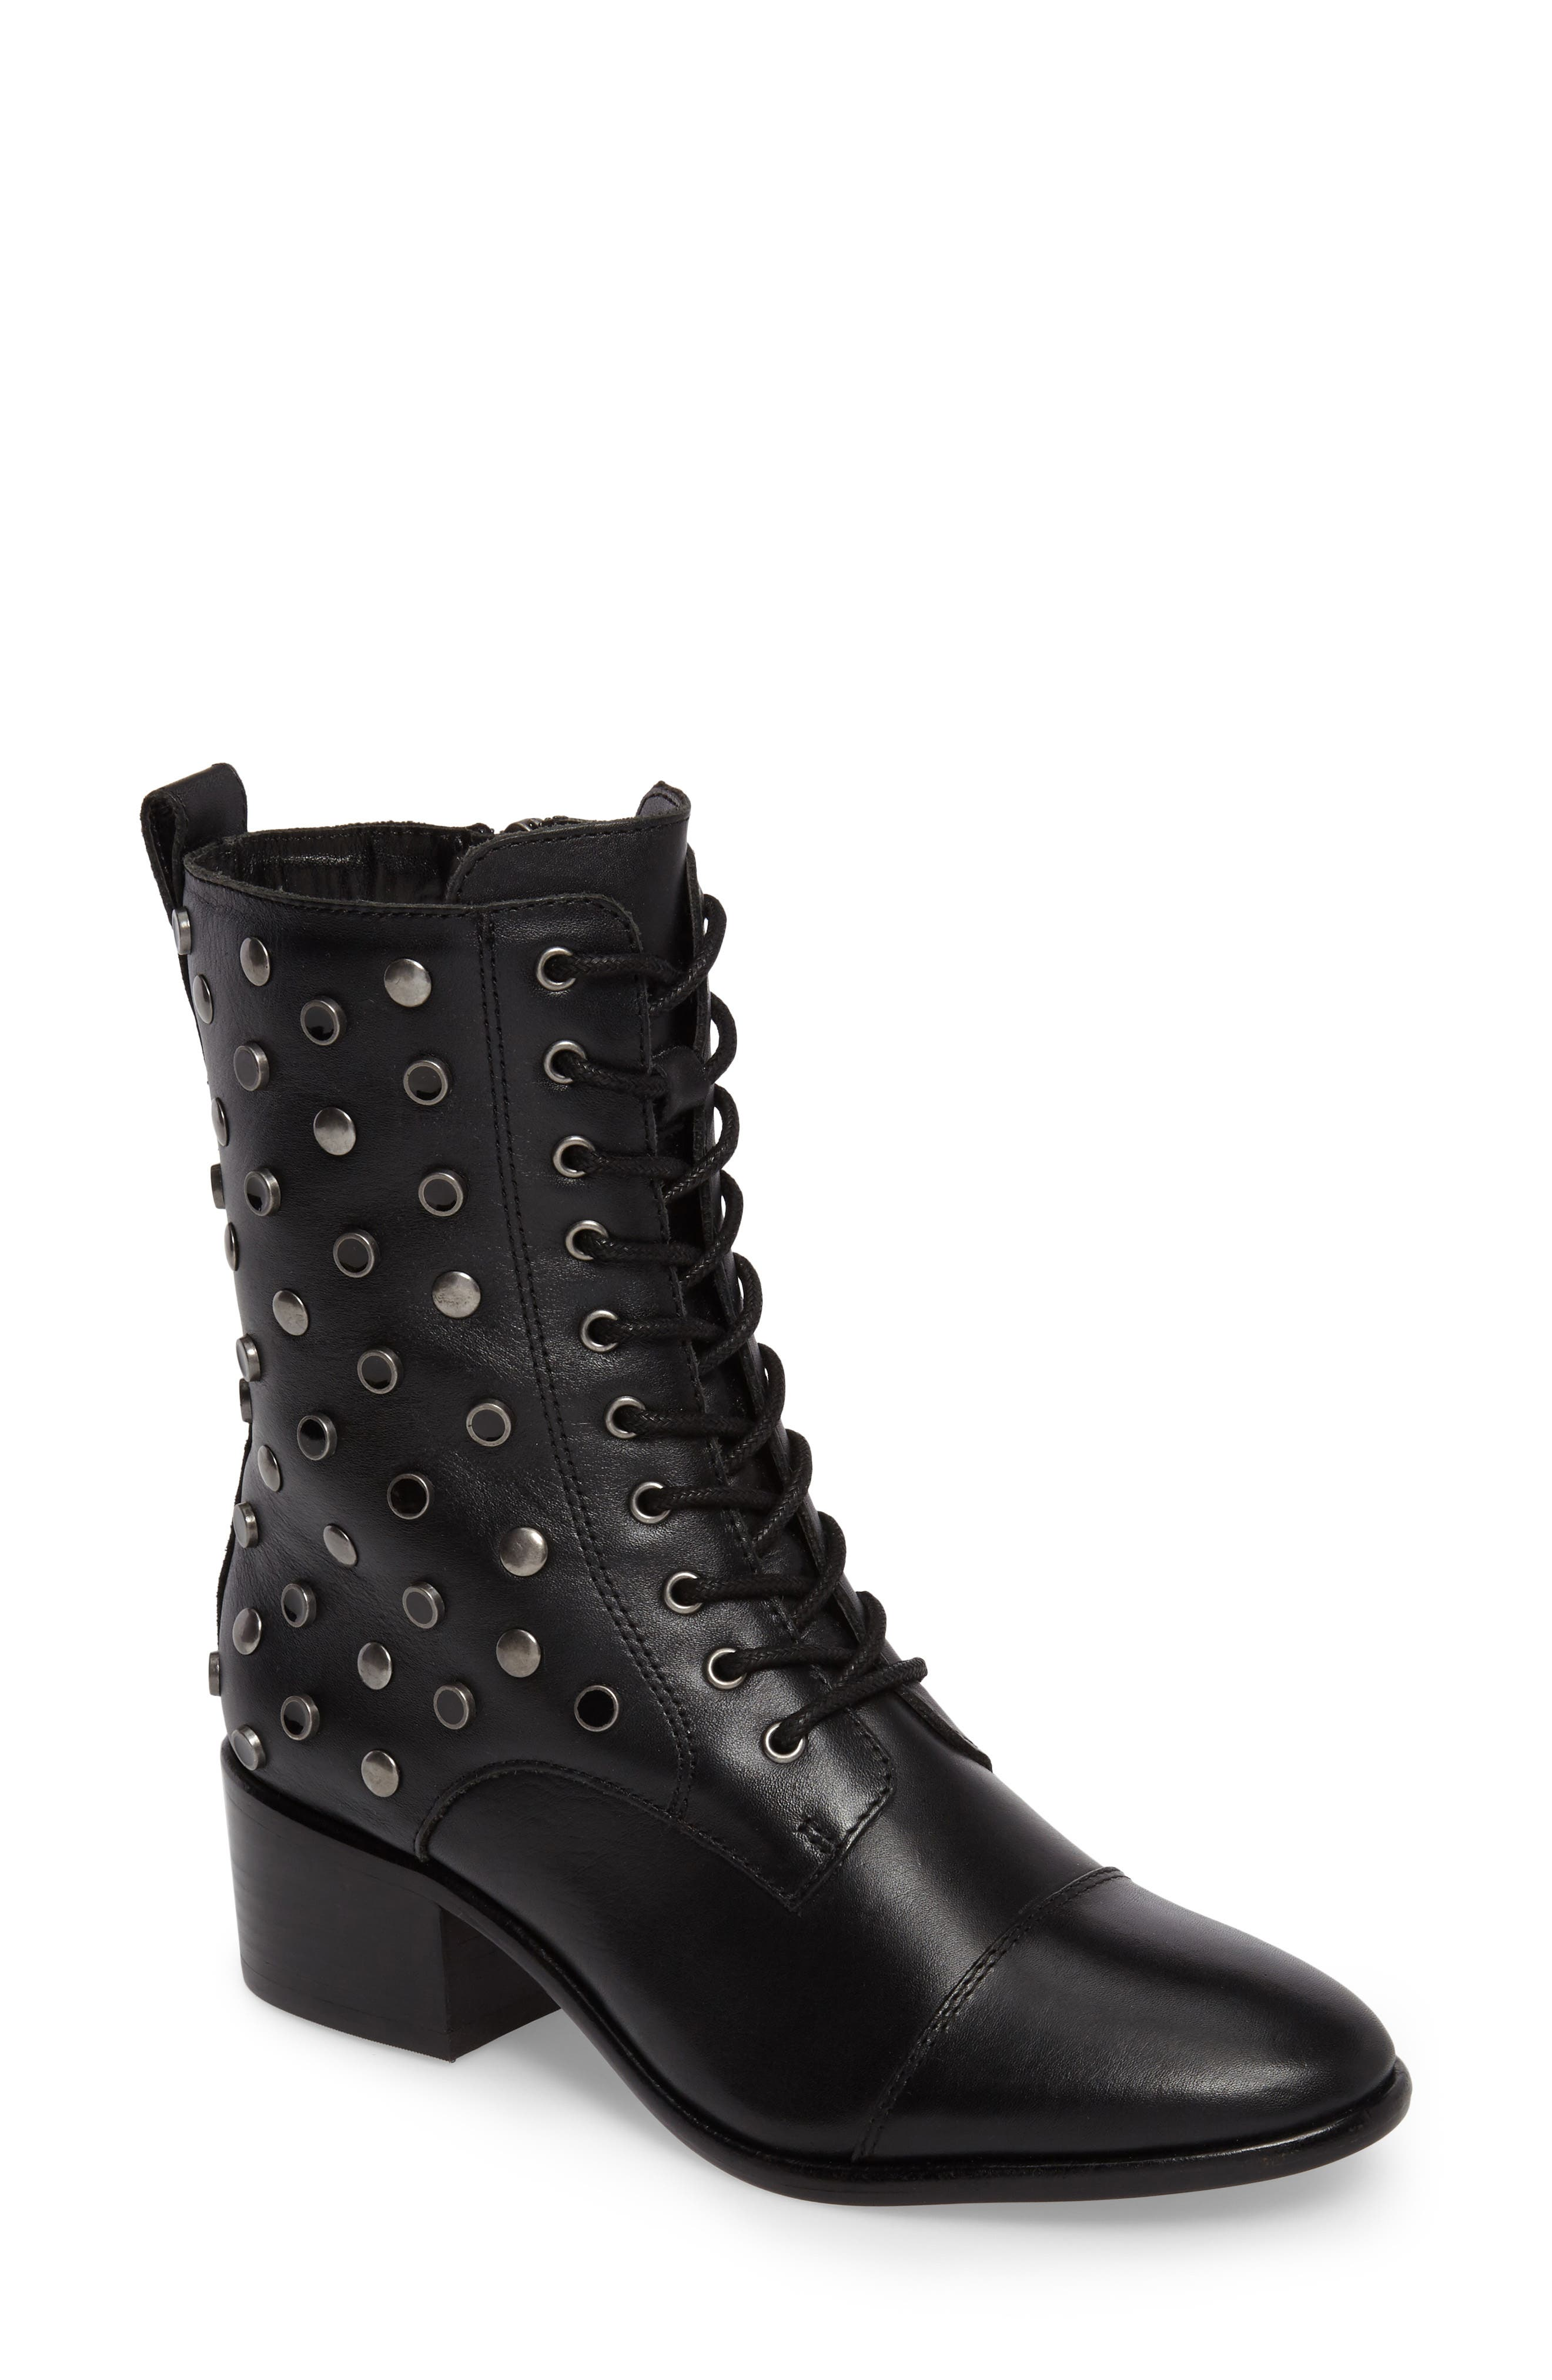 M4D3 Grazie Embellished Water Resistant Boot,                         Main,                         color, Black Leather